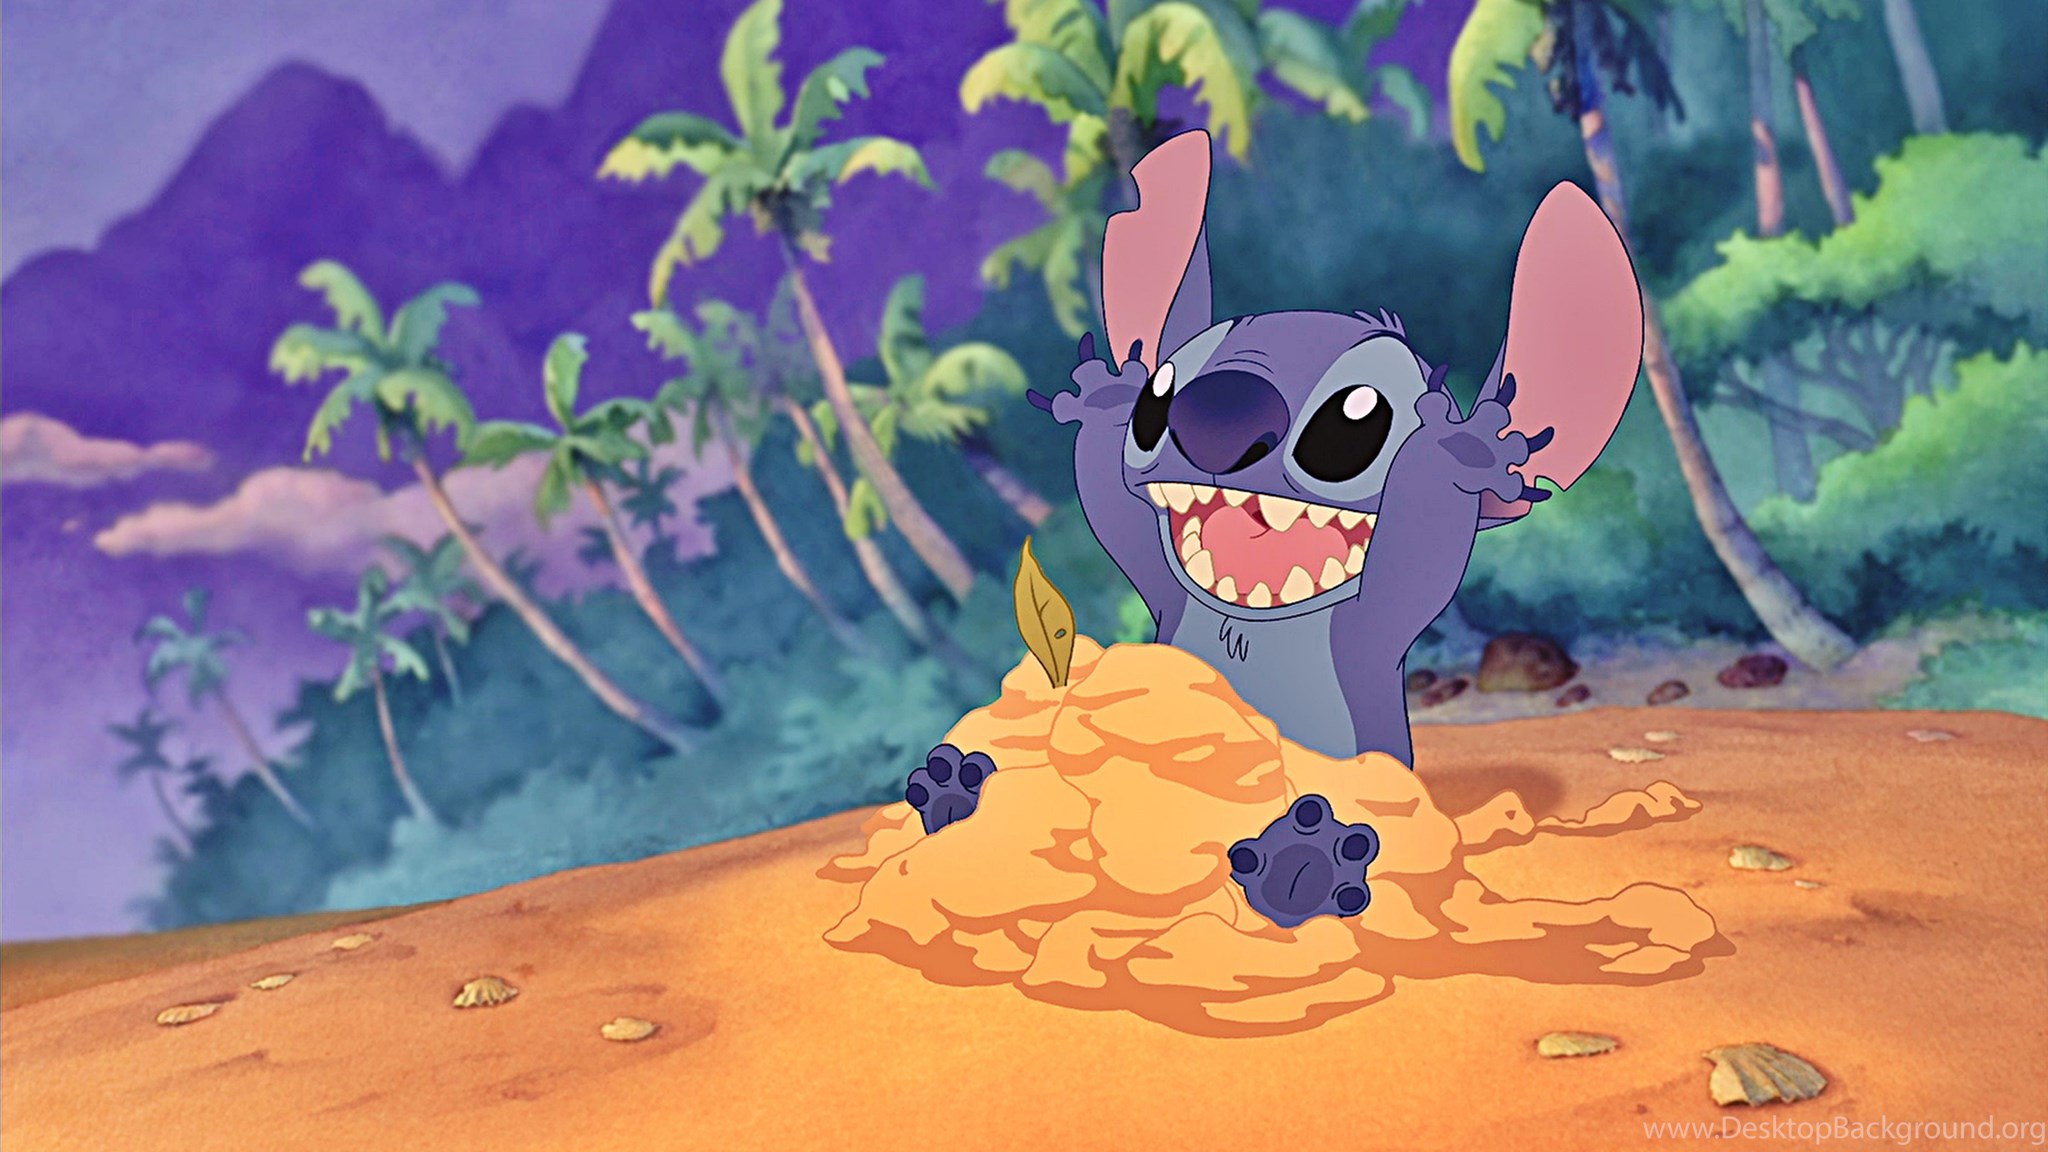 Lilo And Stitch Wallpapers Hd For Iphone And Android Iphone2lovely